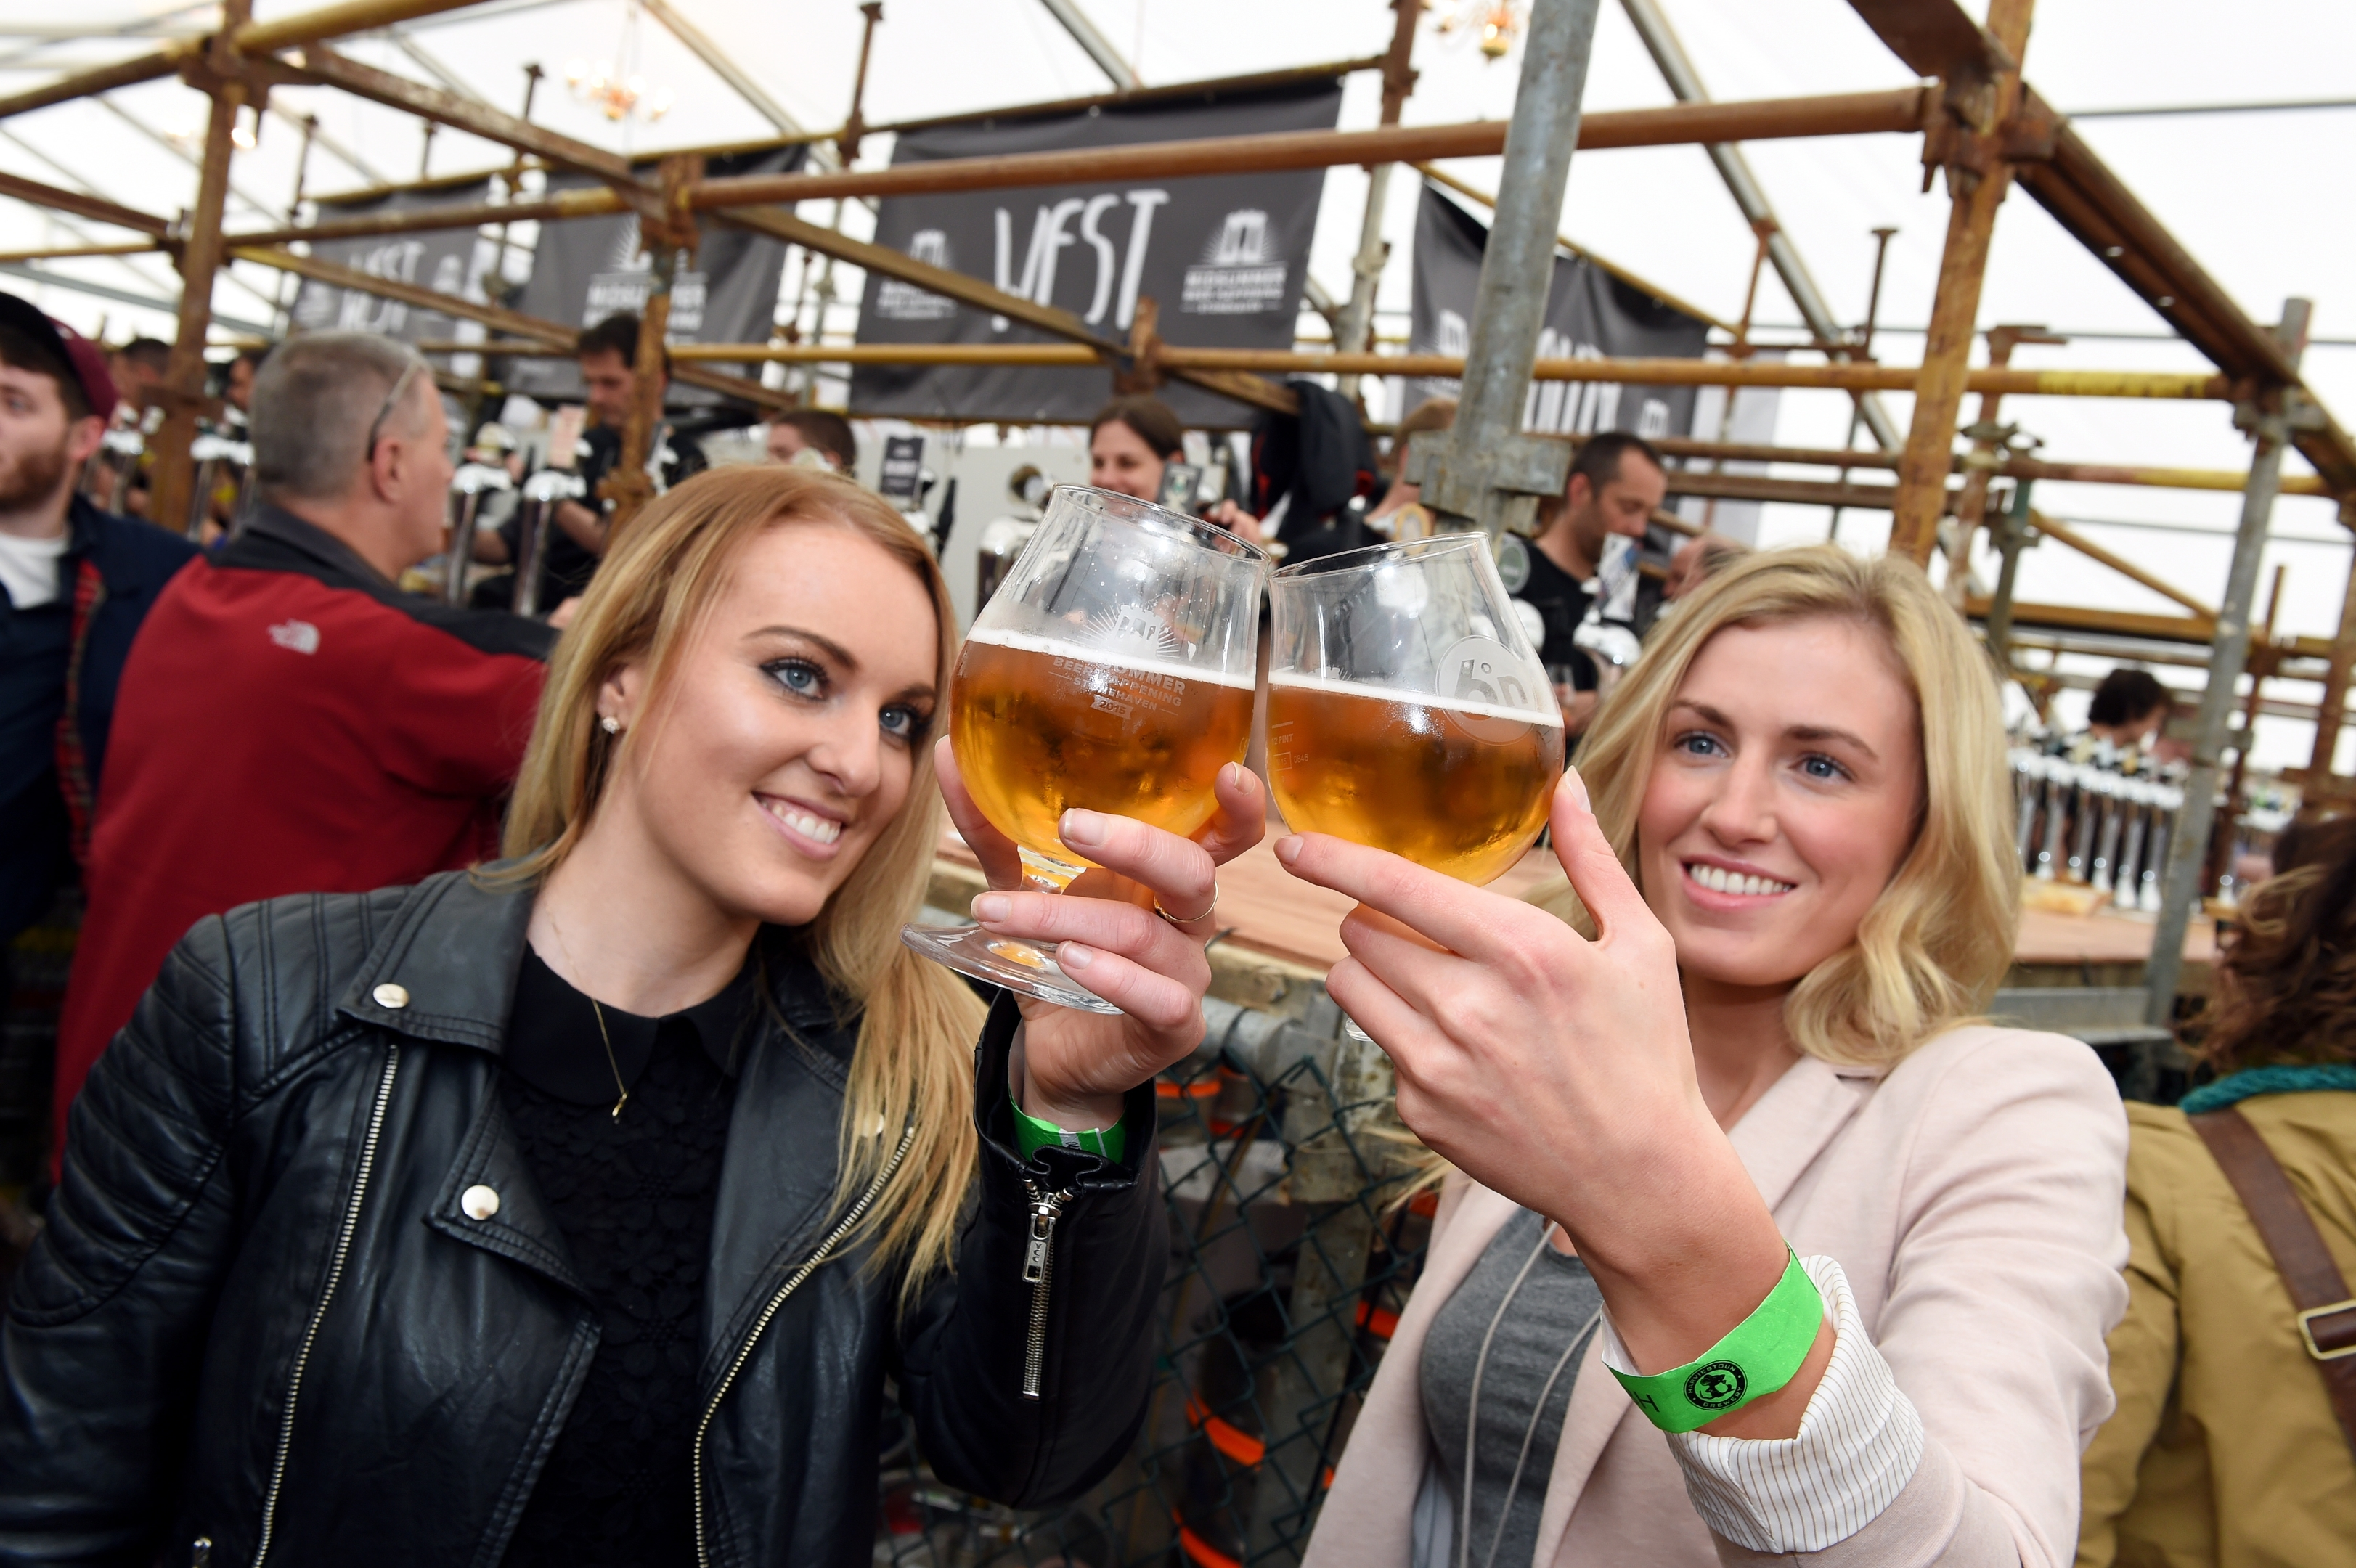 Claire Millar and Karen Sinclair at the inaugural Midsummer Beer Happening taking place in Stonehaven's Baird Park.